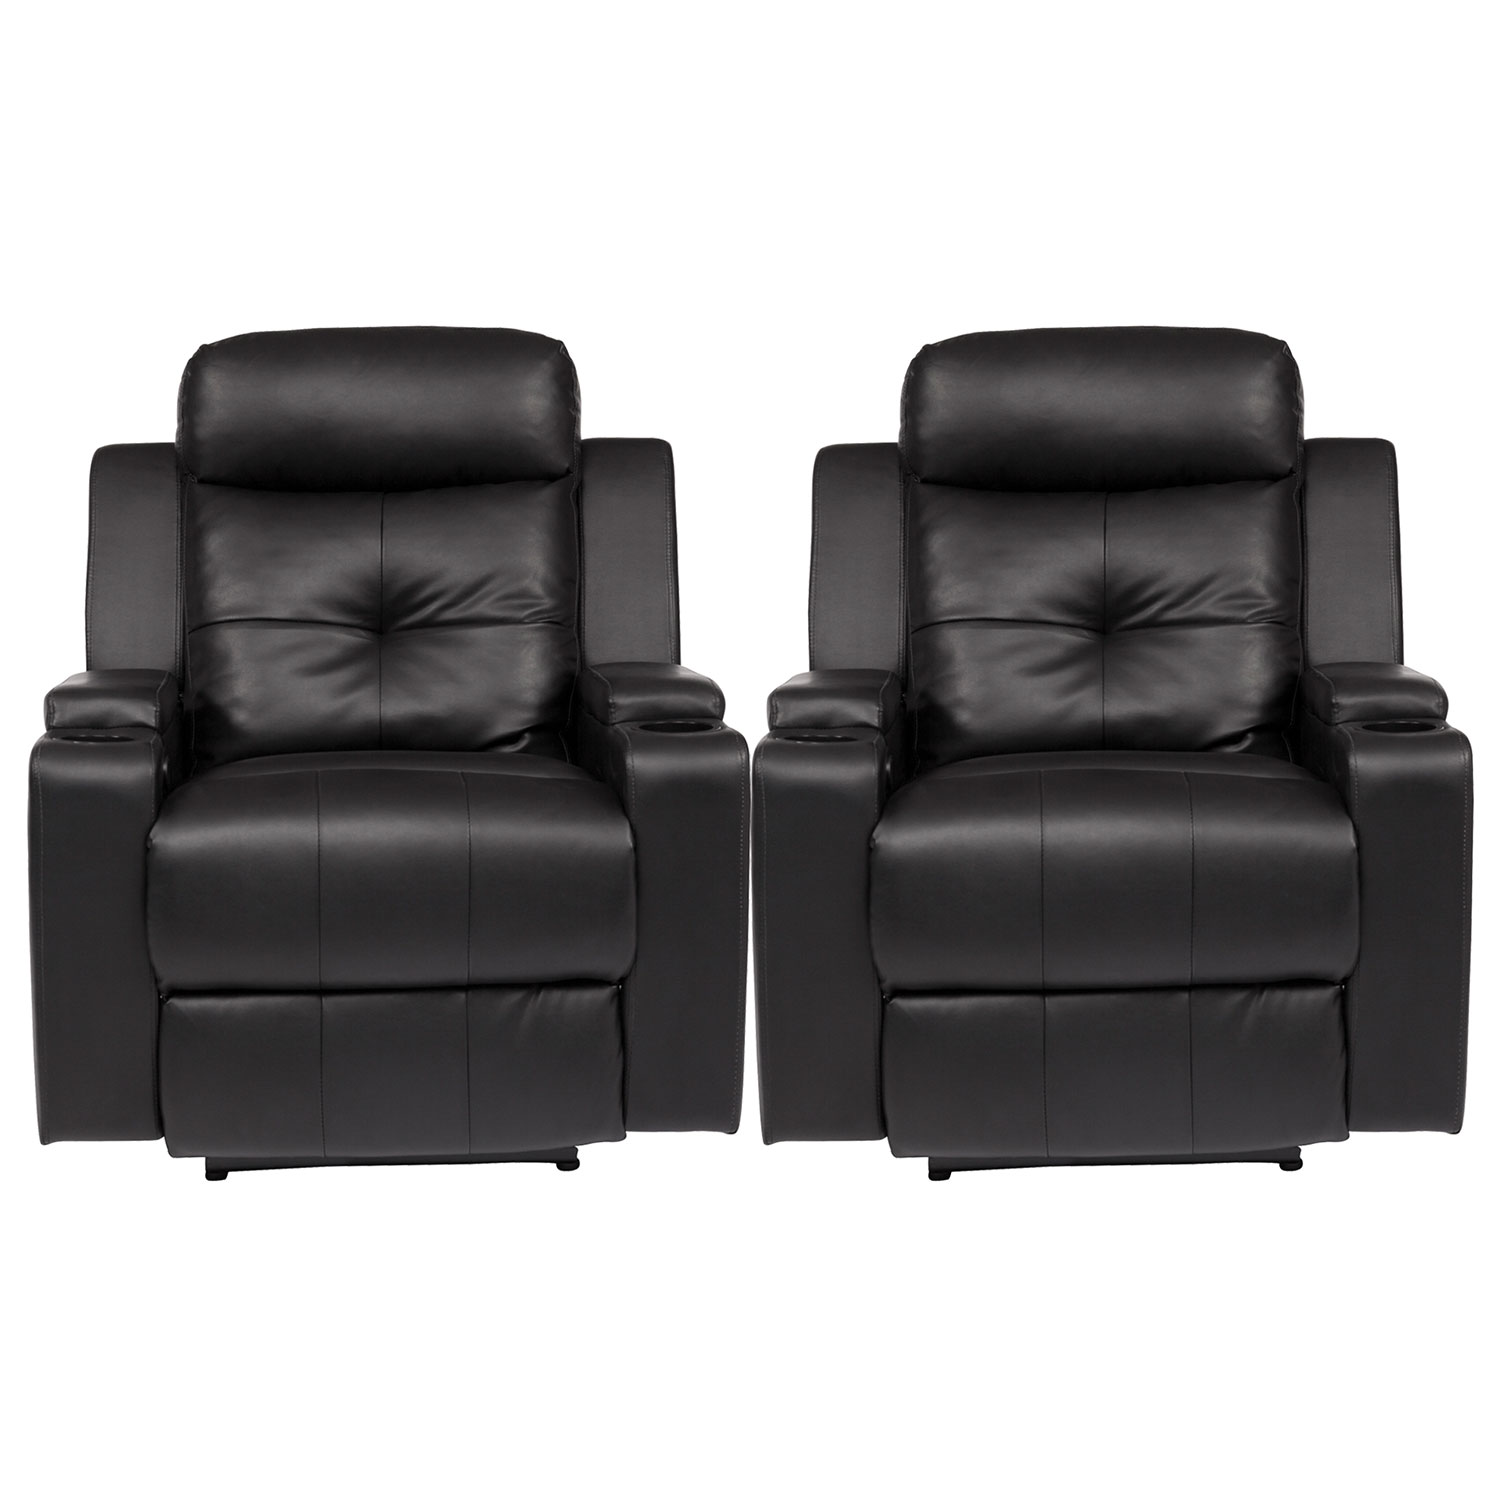 siege cinema maison cheap luosmose fauteuil home cinma with siege cinema maison excellent. Black Bedroom Furniture Sets. Home Design Ideas